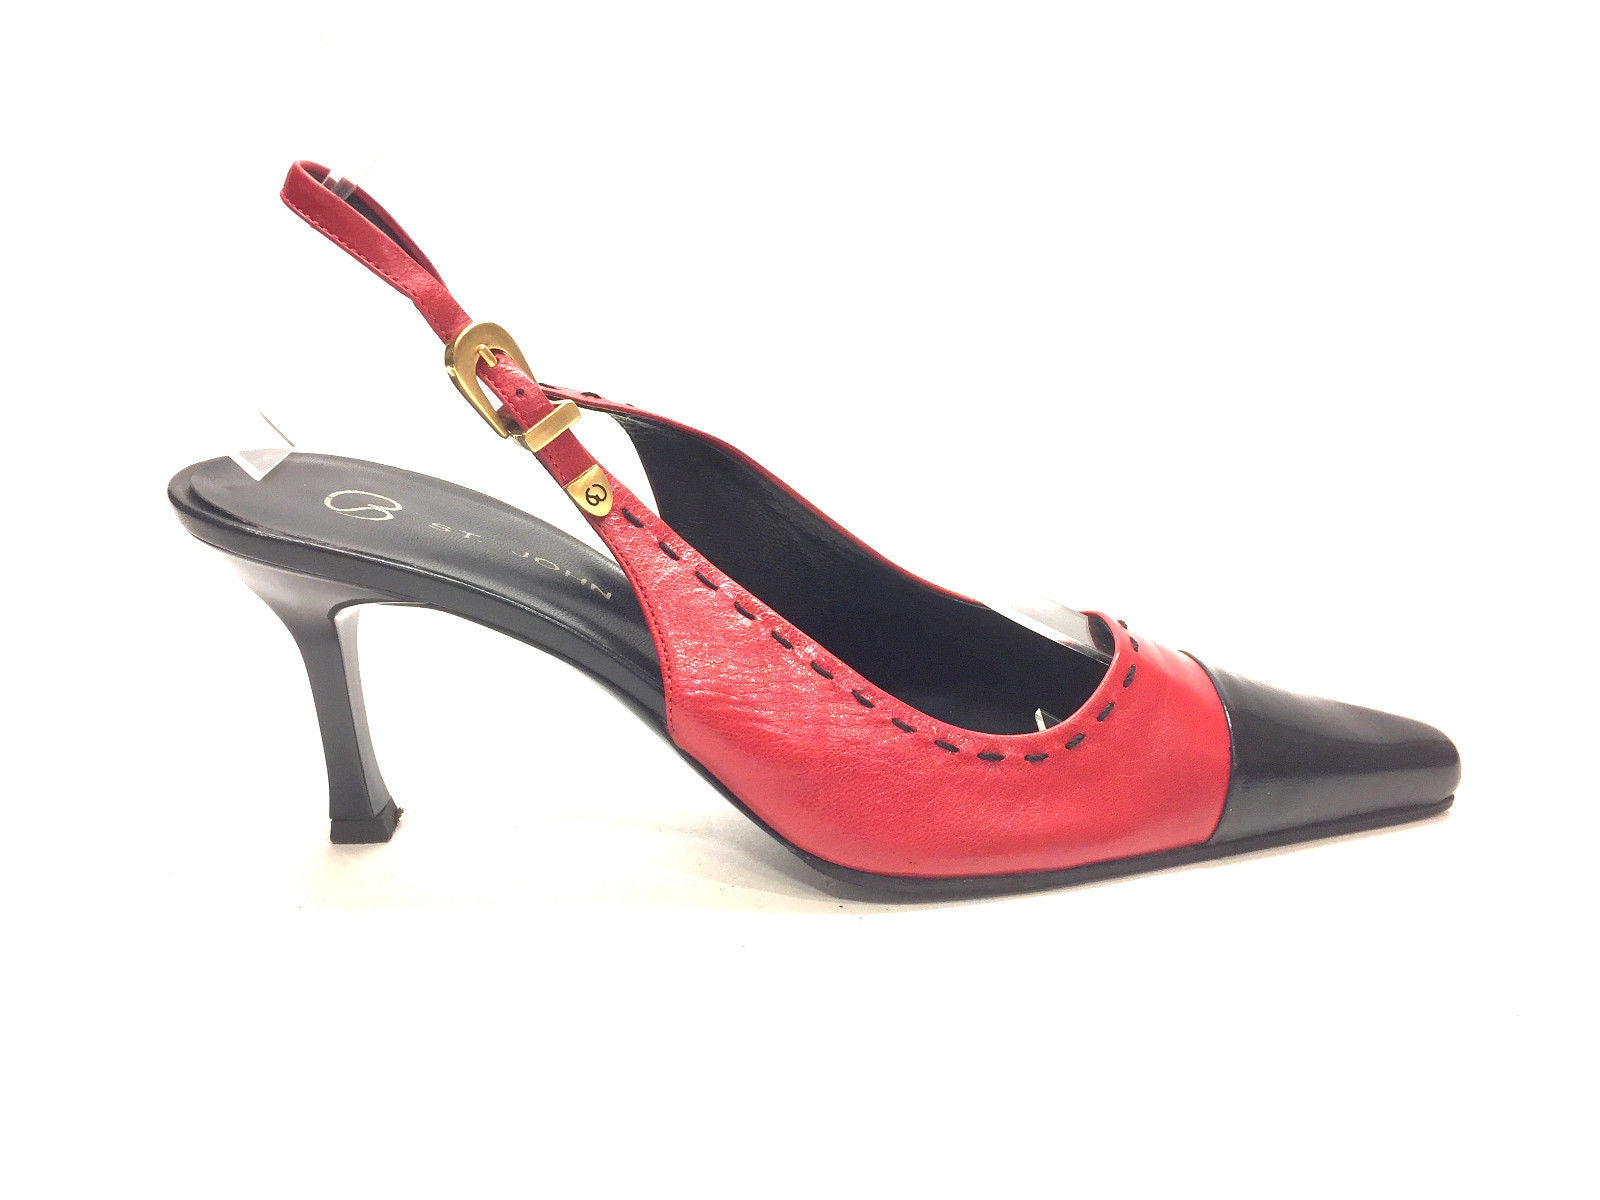 08a1a9db2 JOHN Red Black Leather Stitching Accent Acrylic Heels Slingbacks Shoes  Size  8B